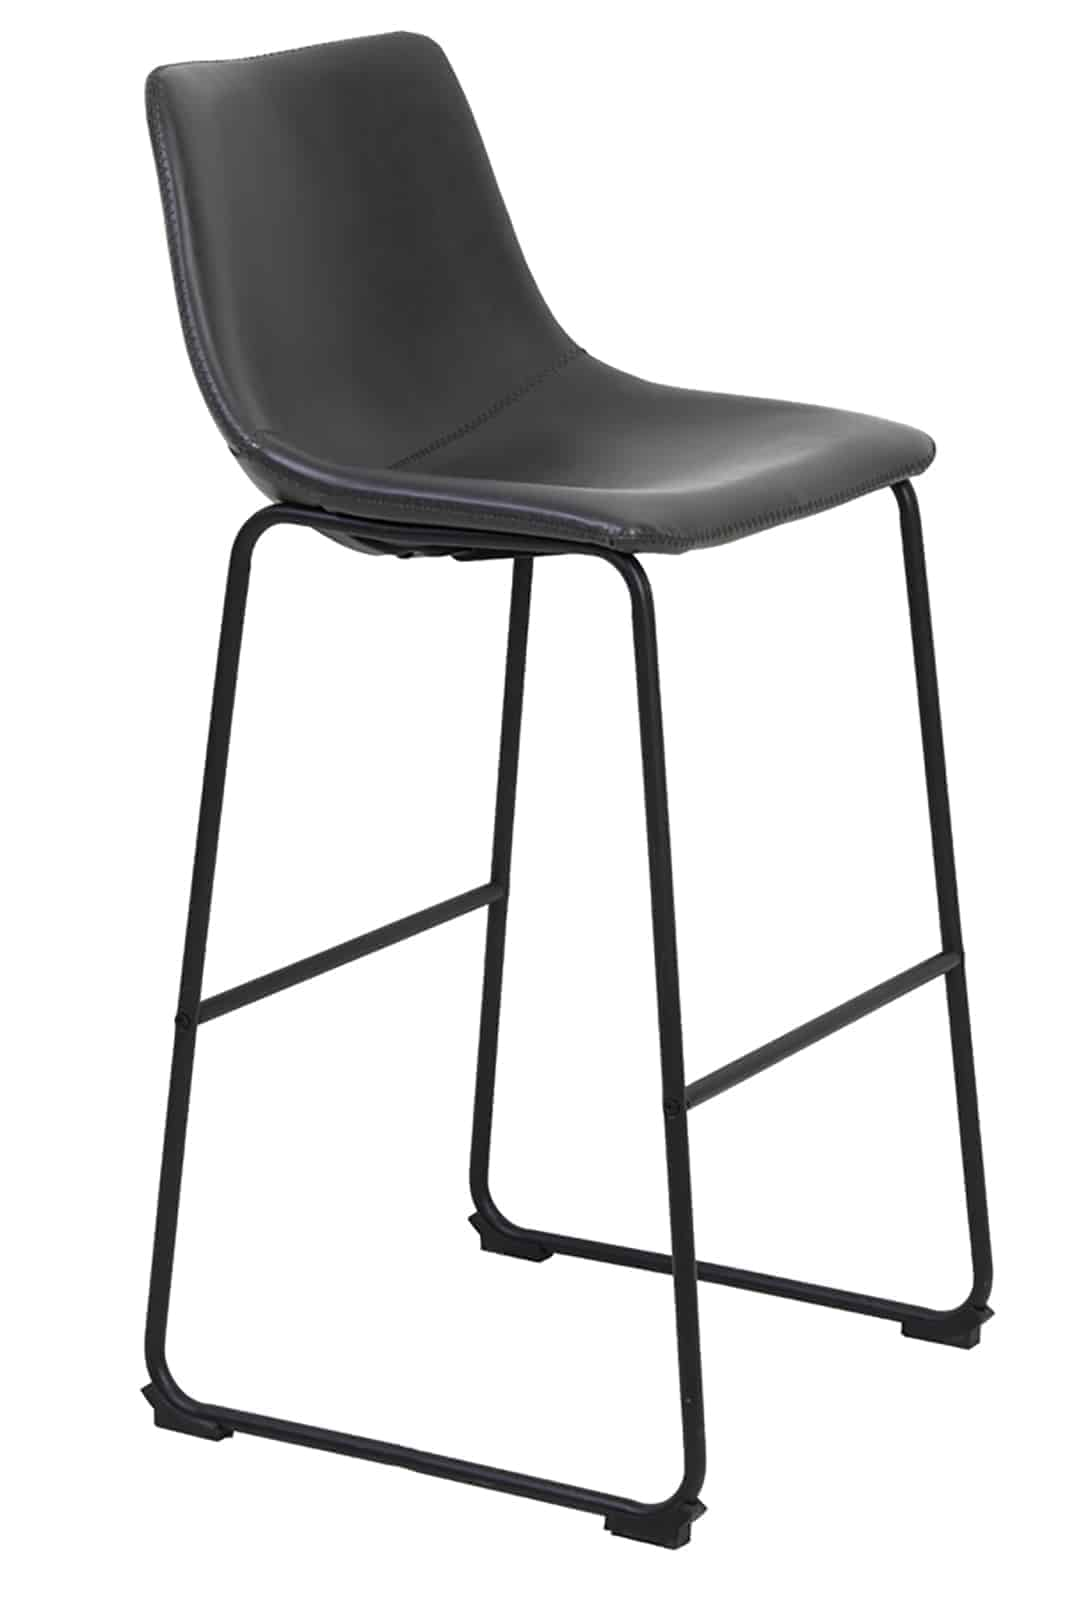 leather bar stool side view